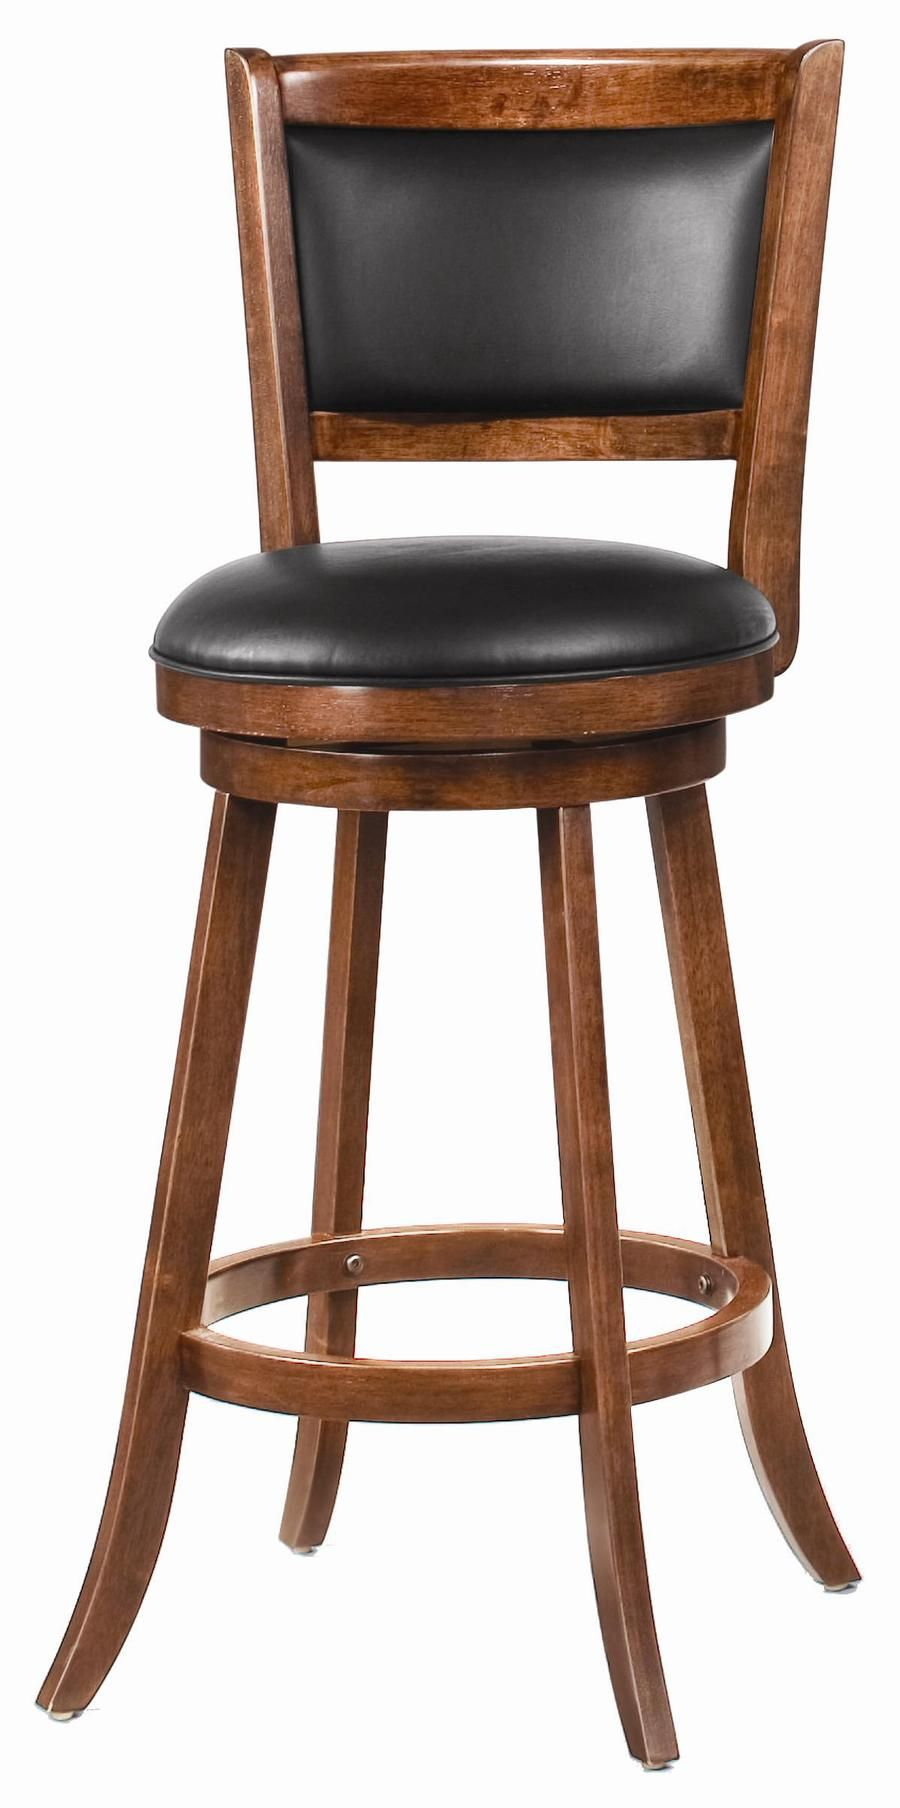 Furniture And Cool Leather Swivel Bar Stool With Back Design Wood Frame Also Soft Black Pad Antique Stools